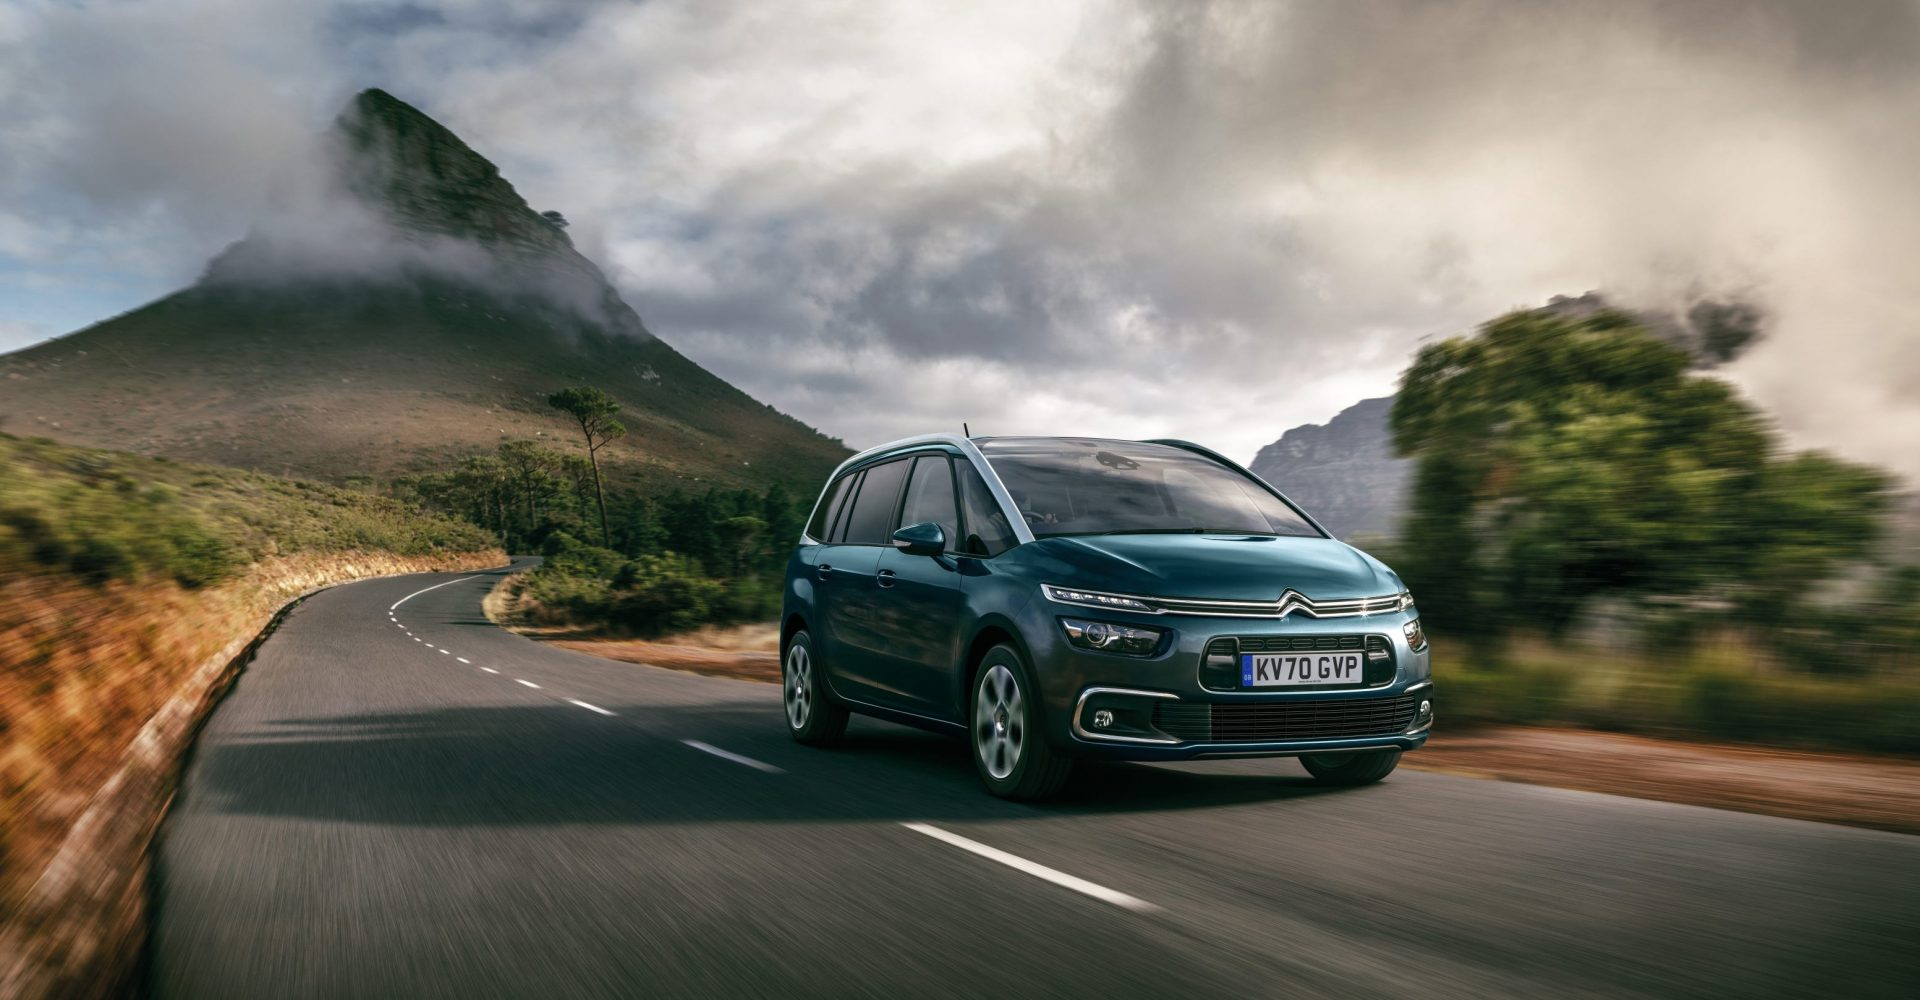 Citroen announces price reductions and lower emissions for Grand C4 Spacetourer